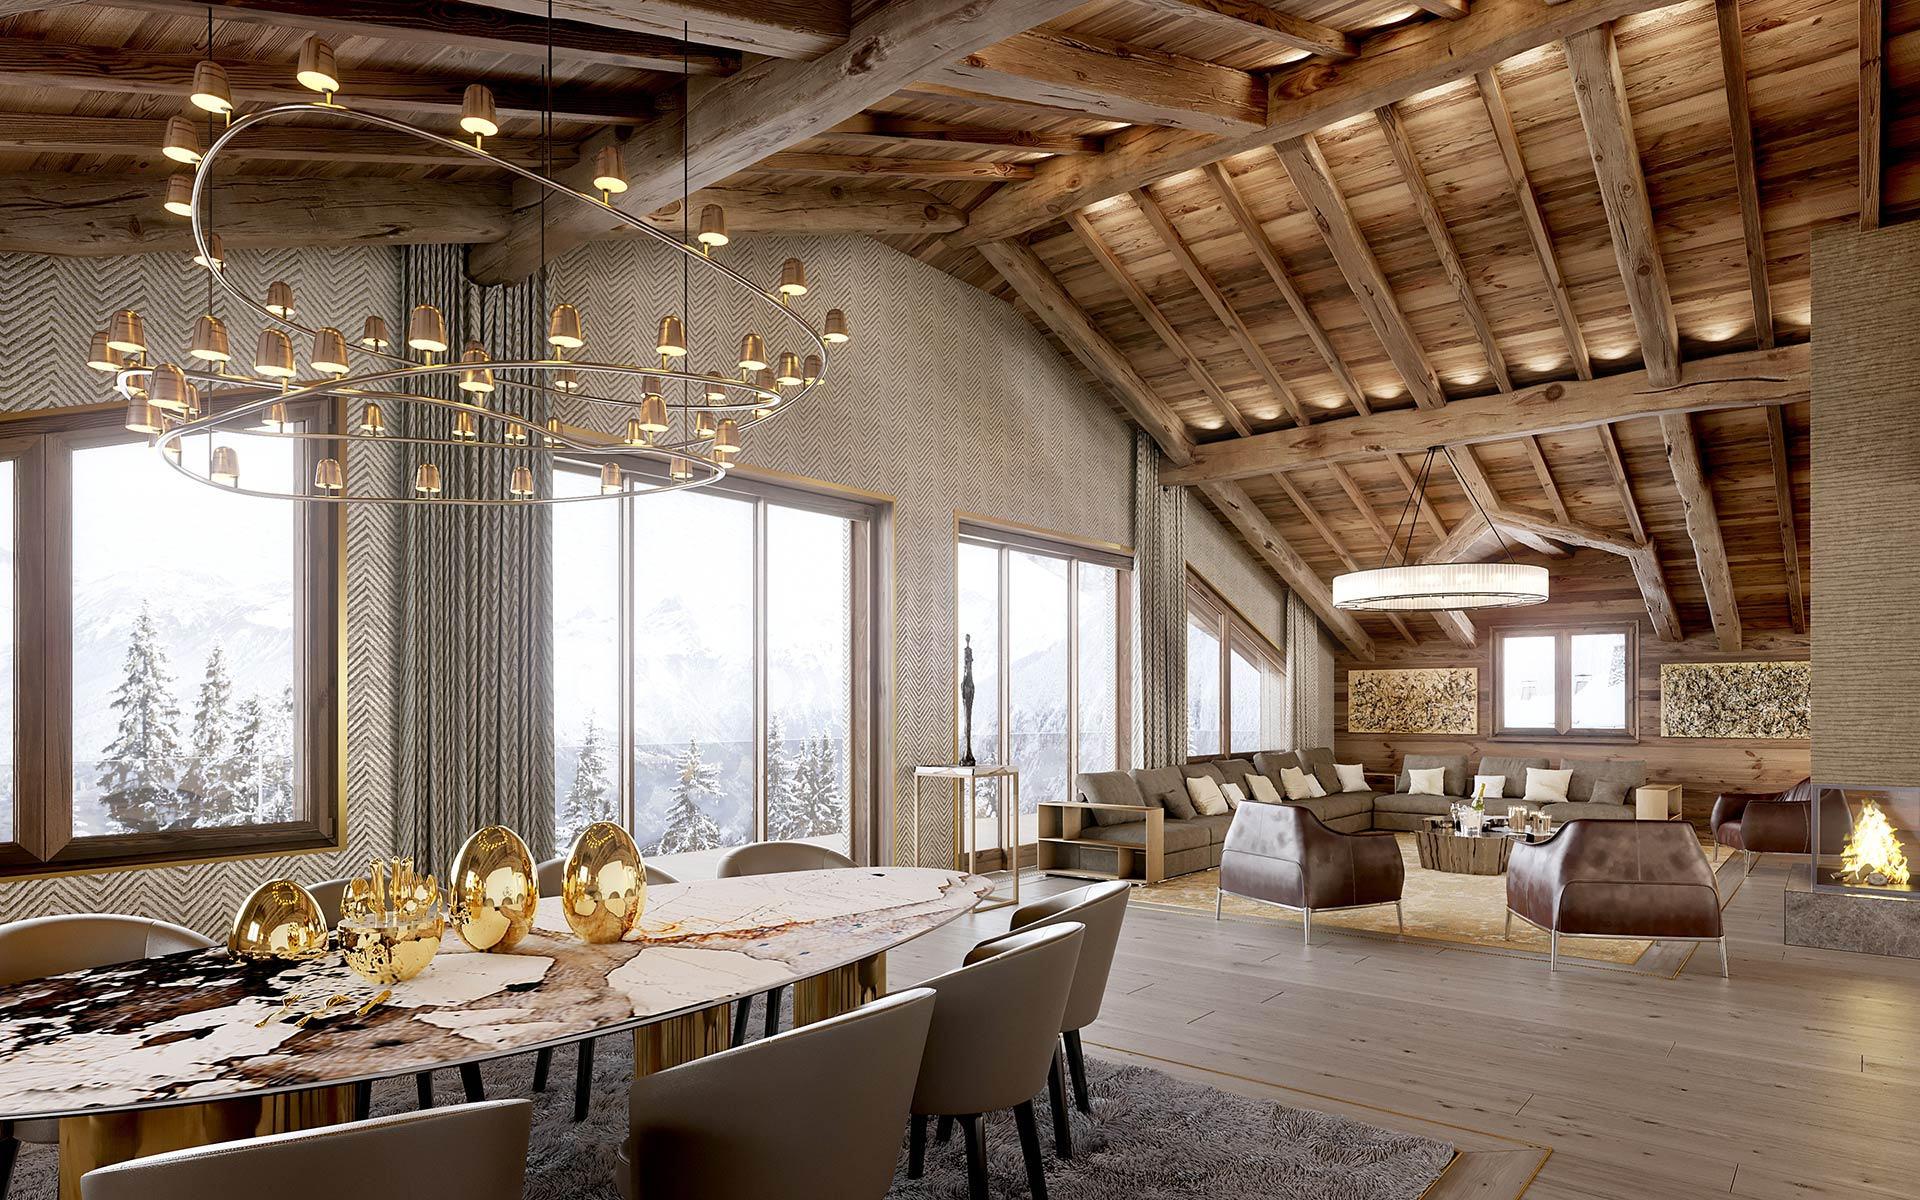 3D Render of an interior of a luxury chalet living-room